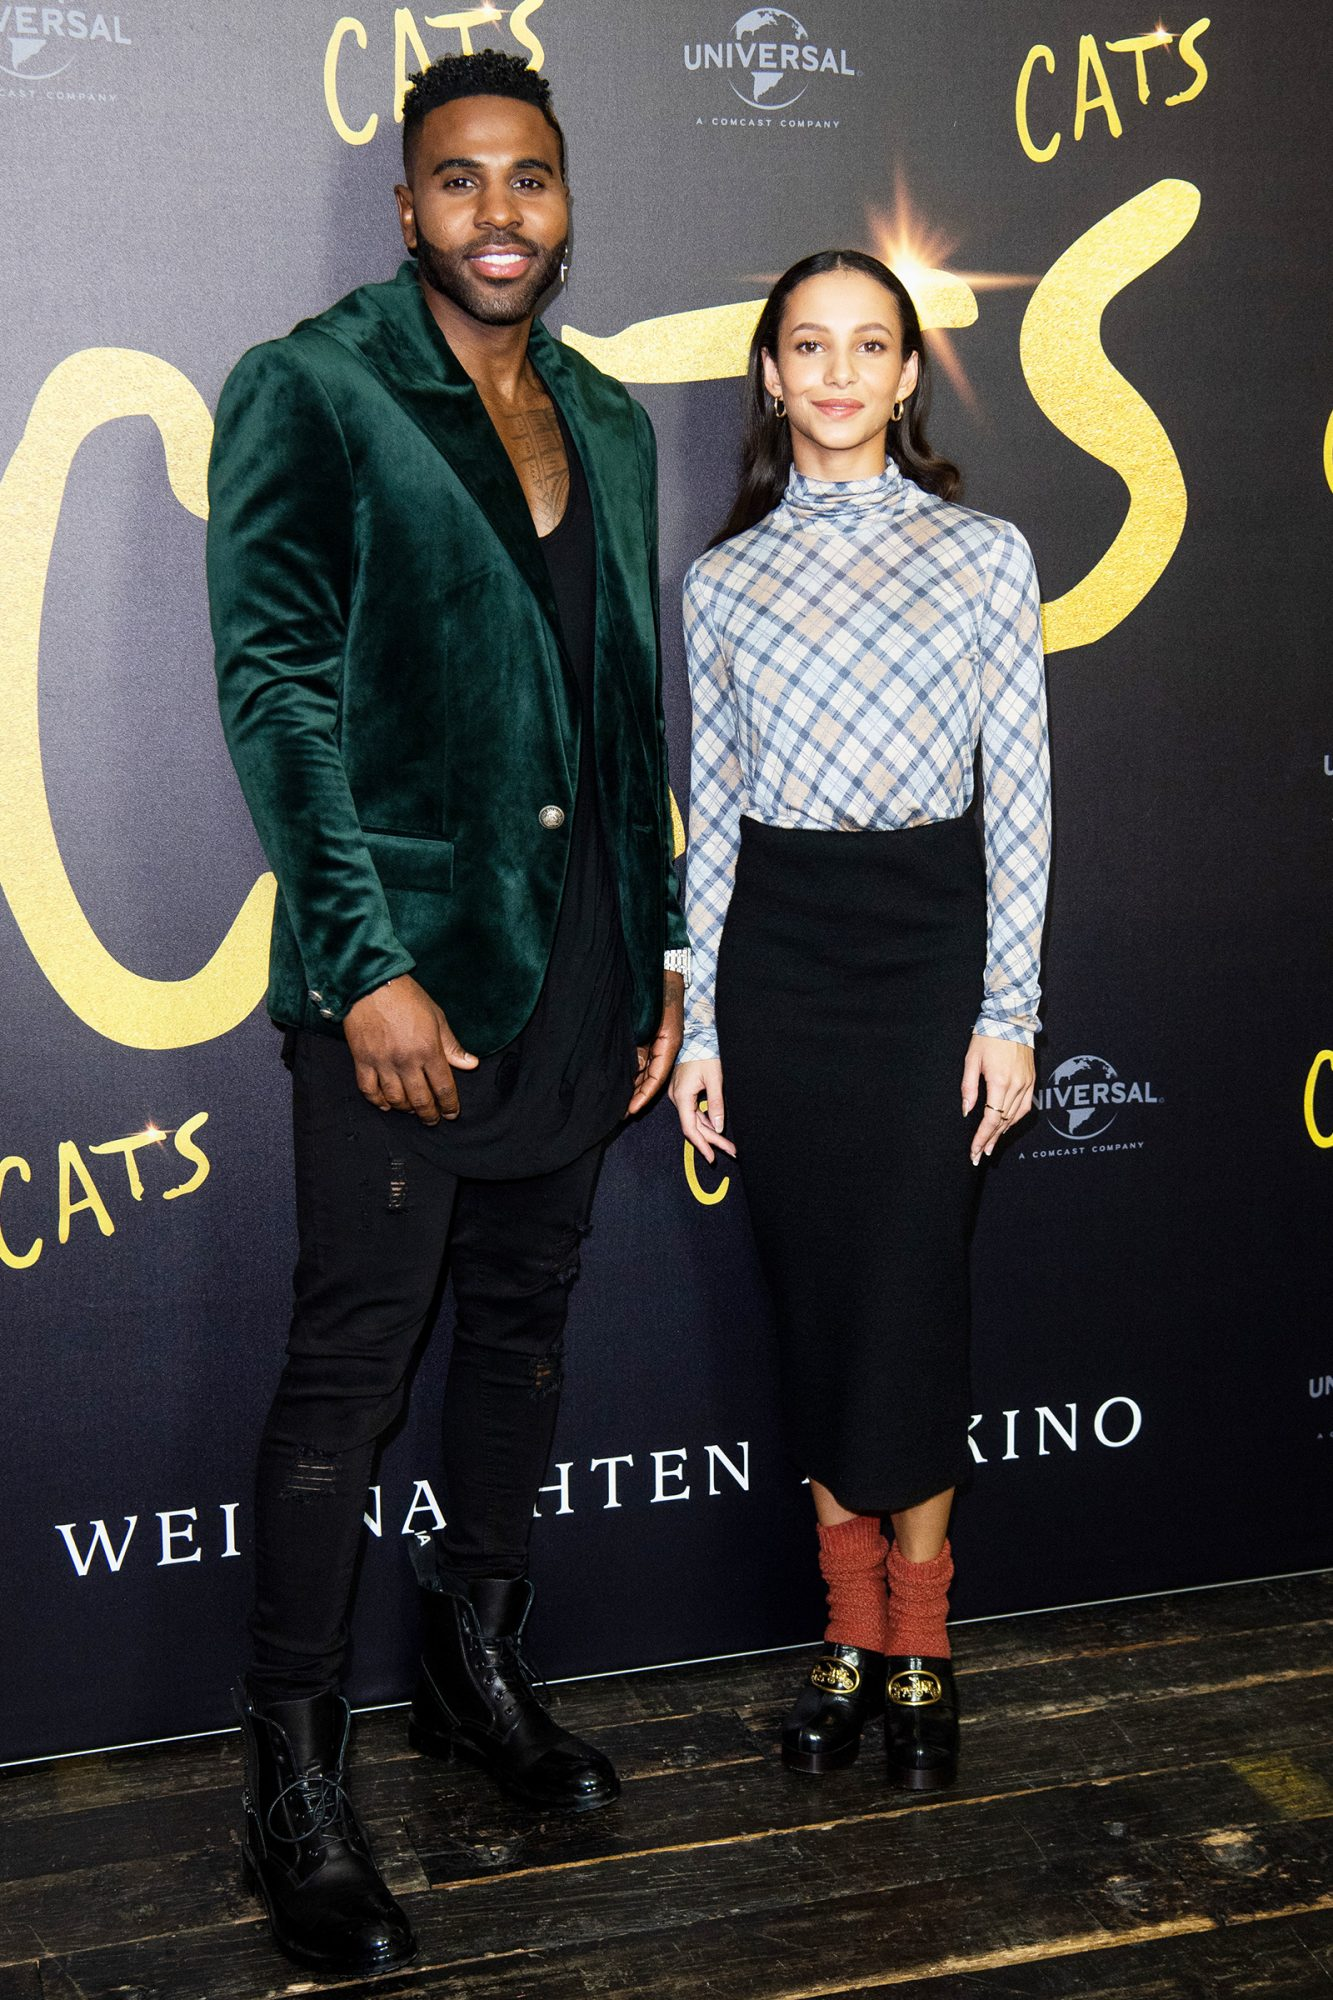 """Jason Derulo and Francesca Hayward at the photo call for the movie """"CATS"""" at Soho House on December 10, 2019 in Berlin"""